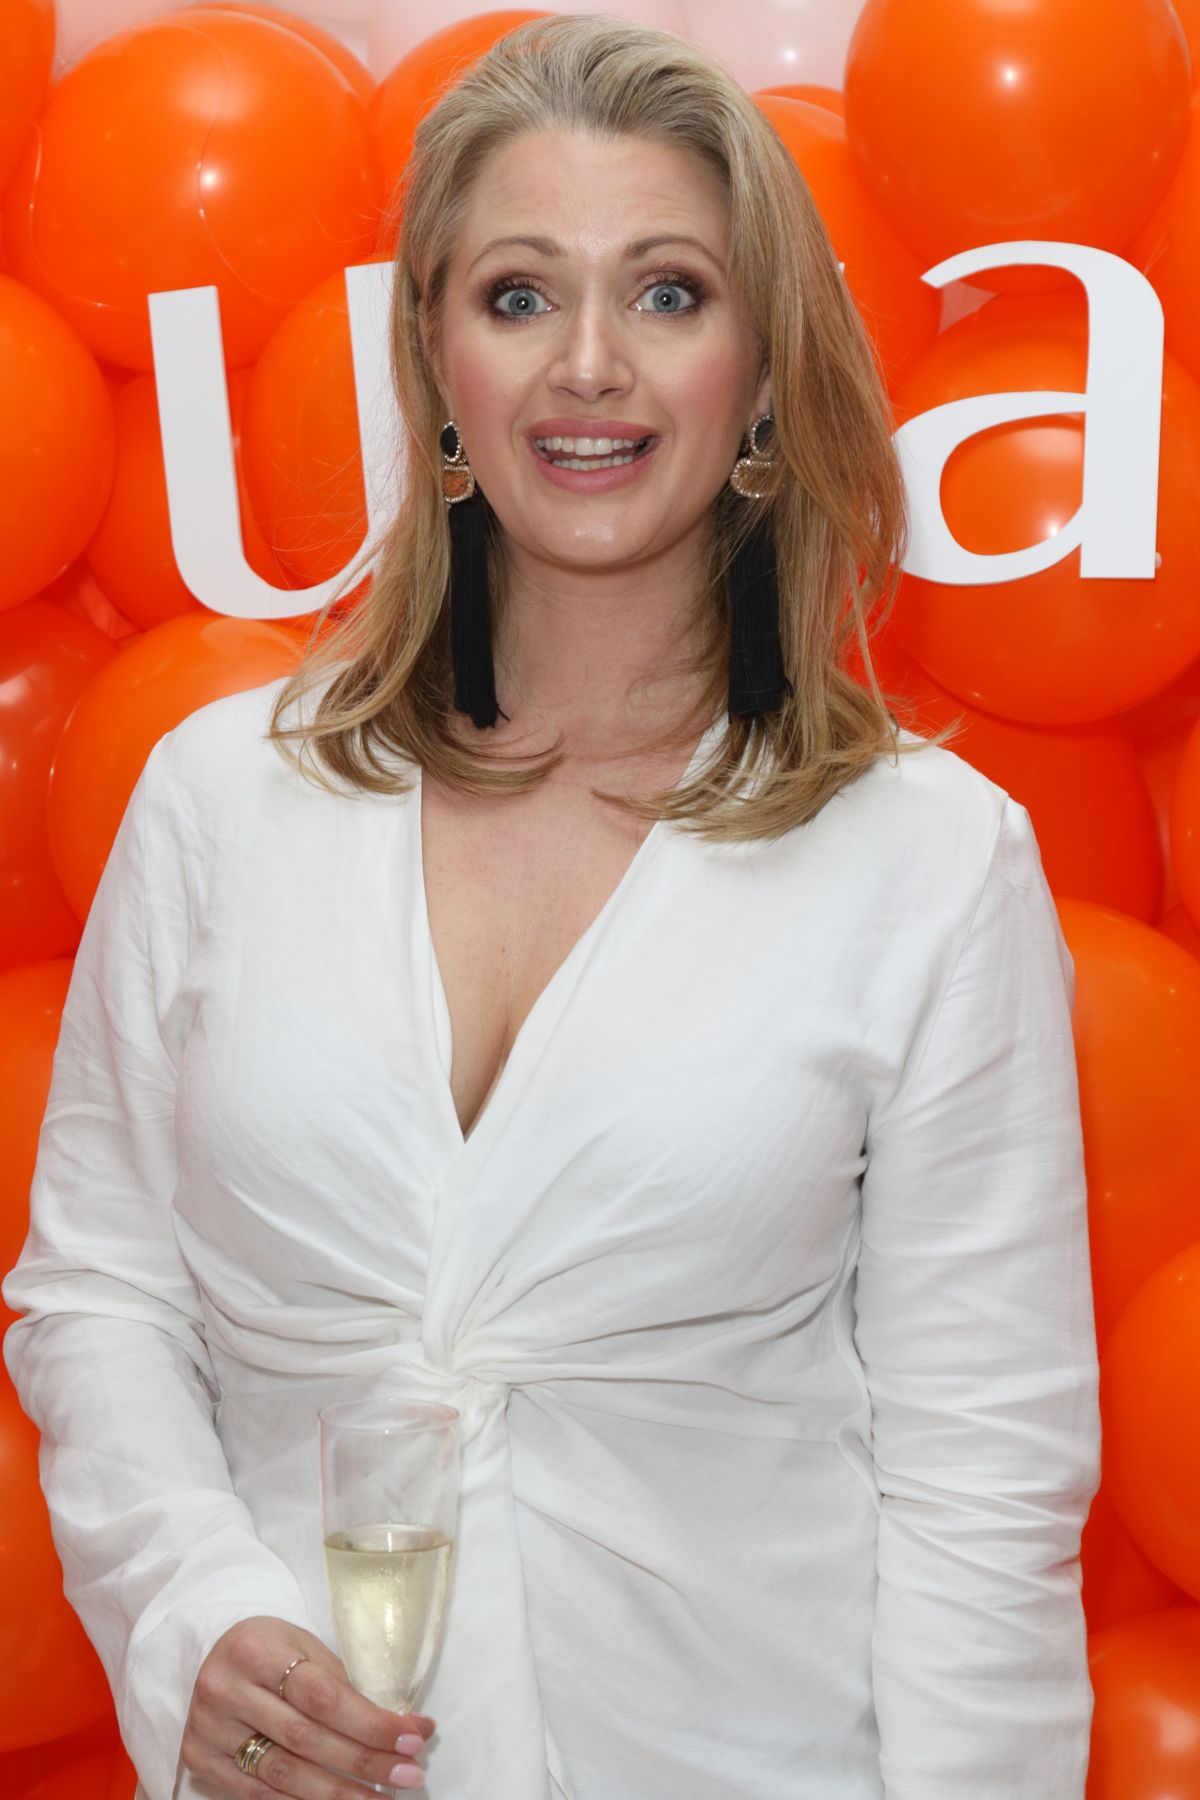 Paparazzi Hayley McQueen naked (61 foto and video), Tits, Hot, Feet, legs 2018